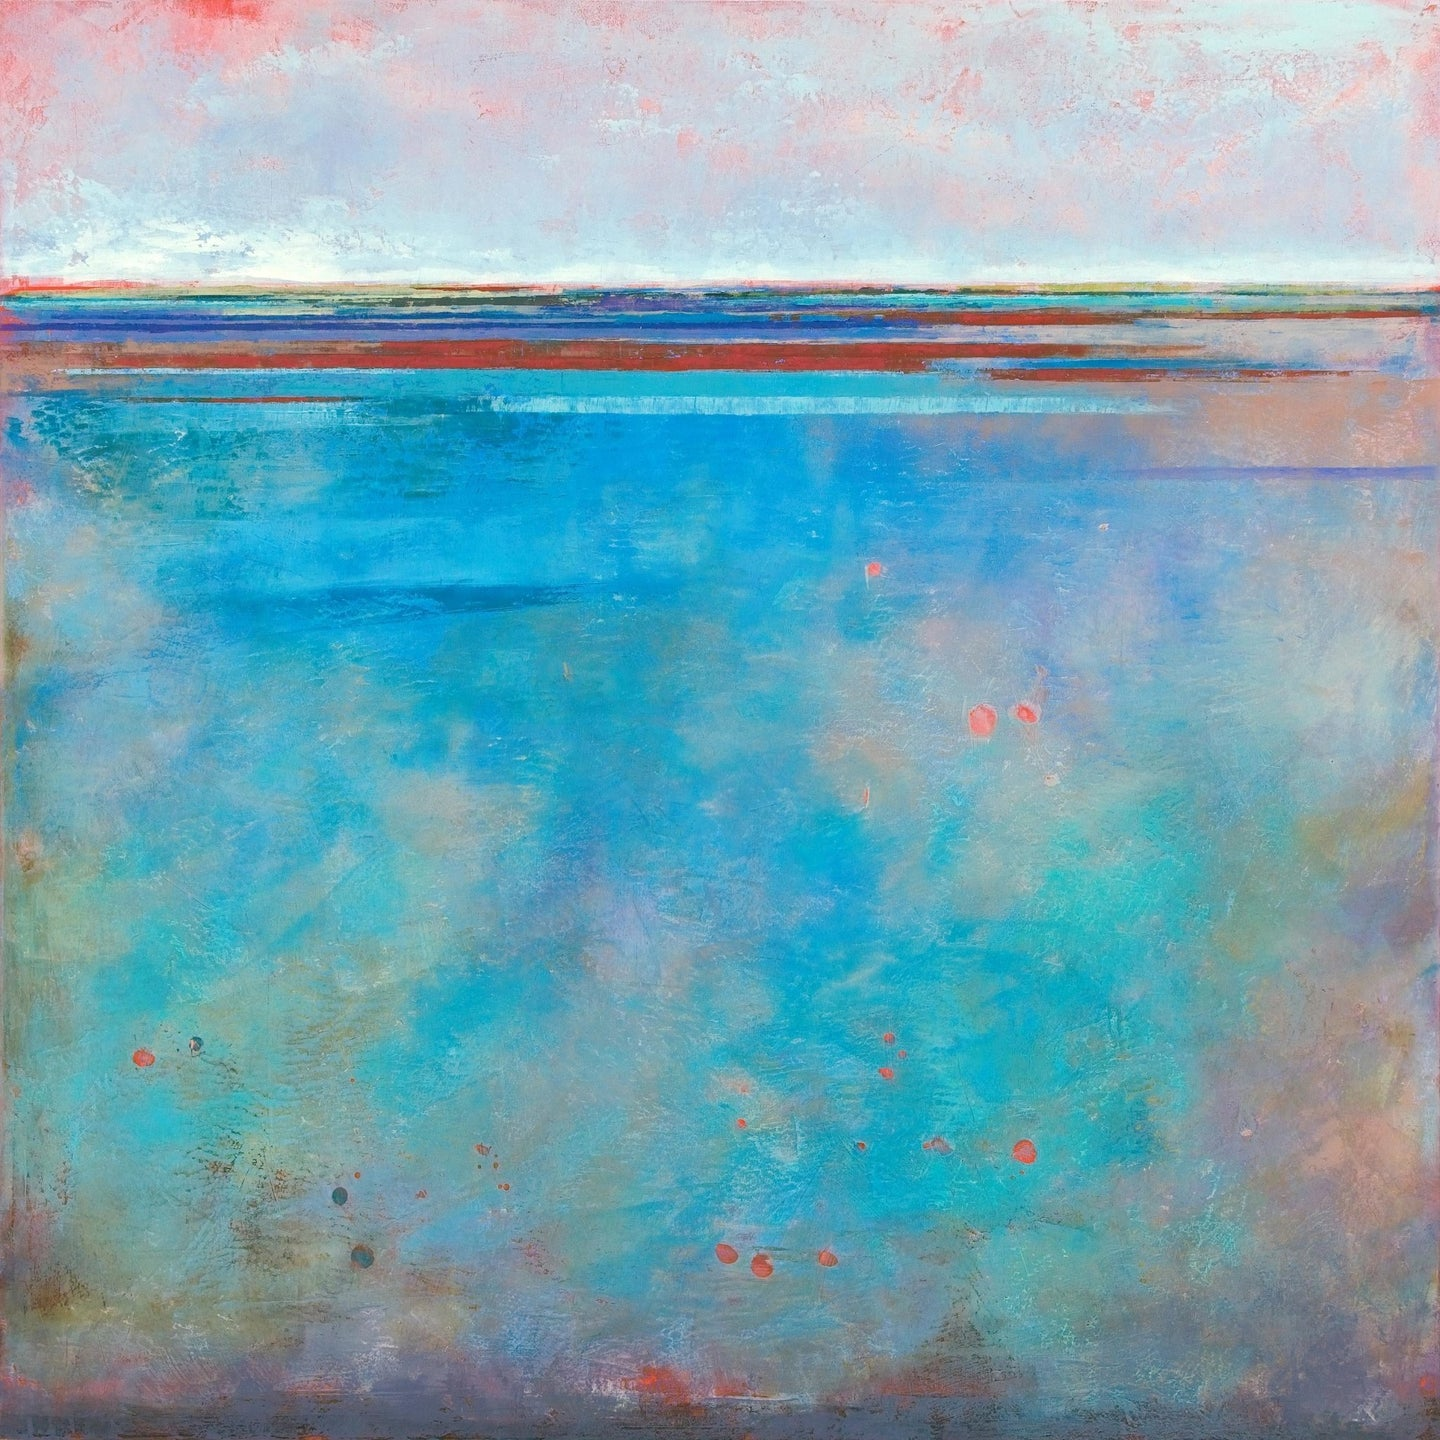 Turquoise abstract beach artwork